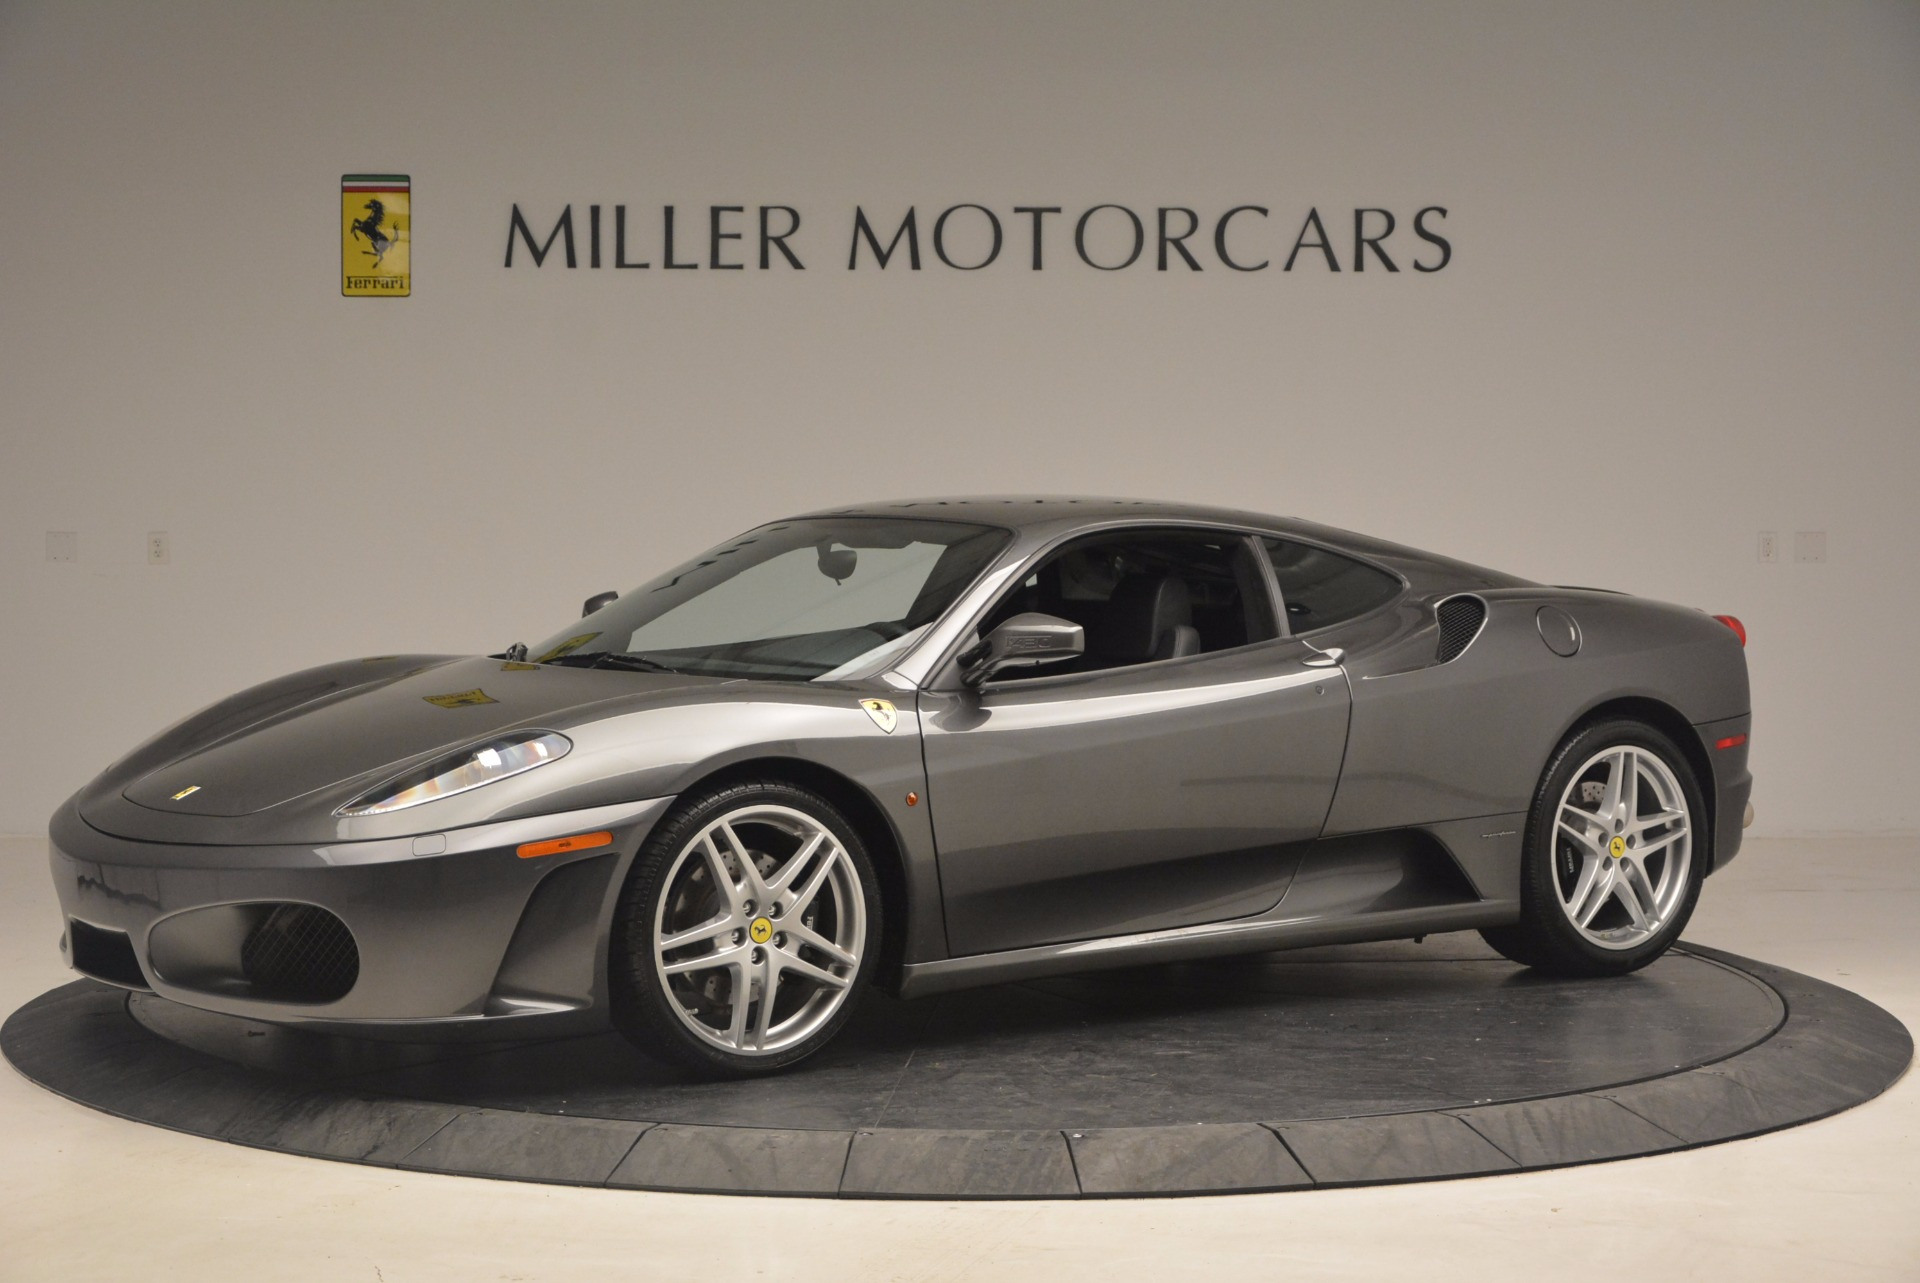 Used 2005 Ferrari F430 6-Speed Manual For Sale In Westport, CT 1286_p2